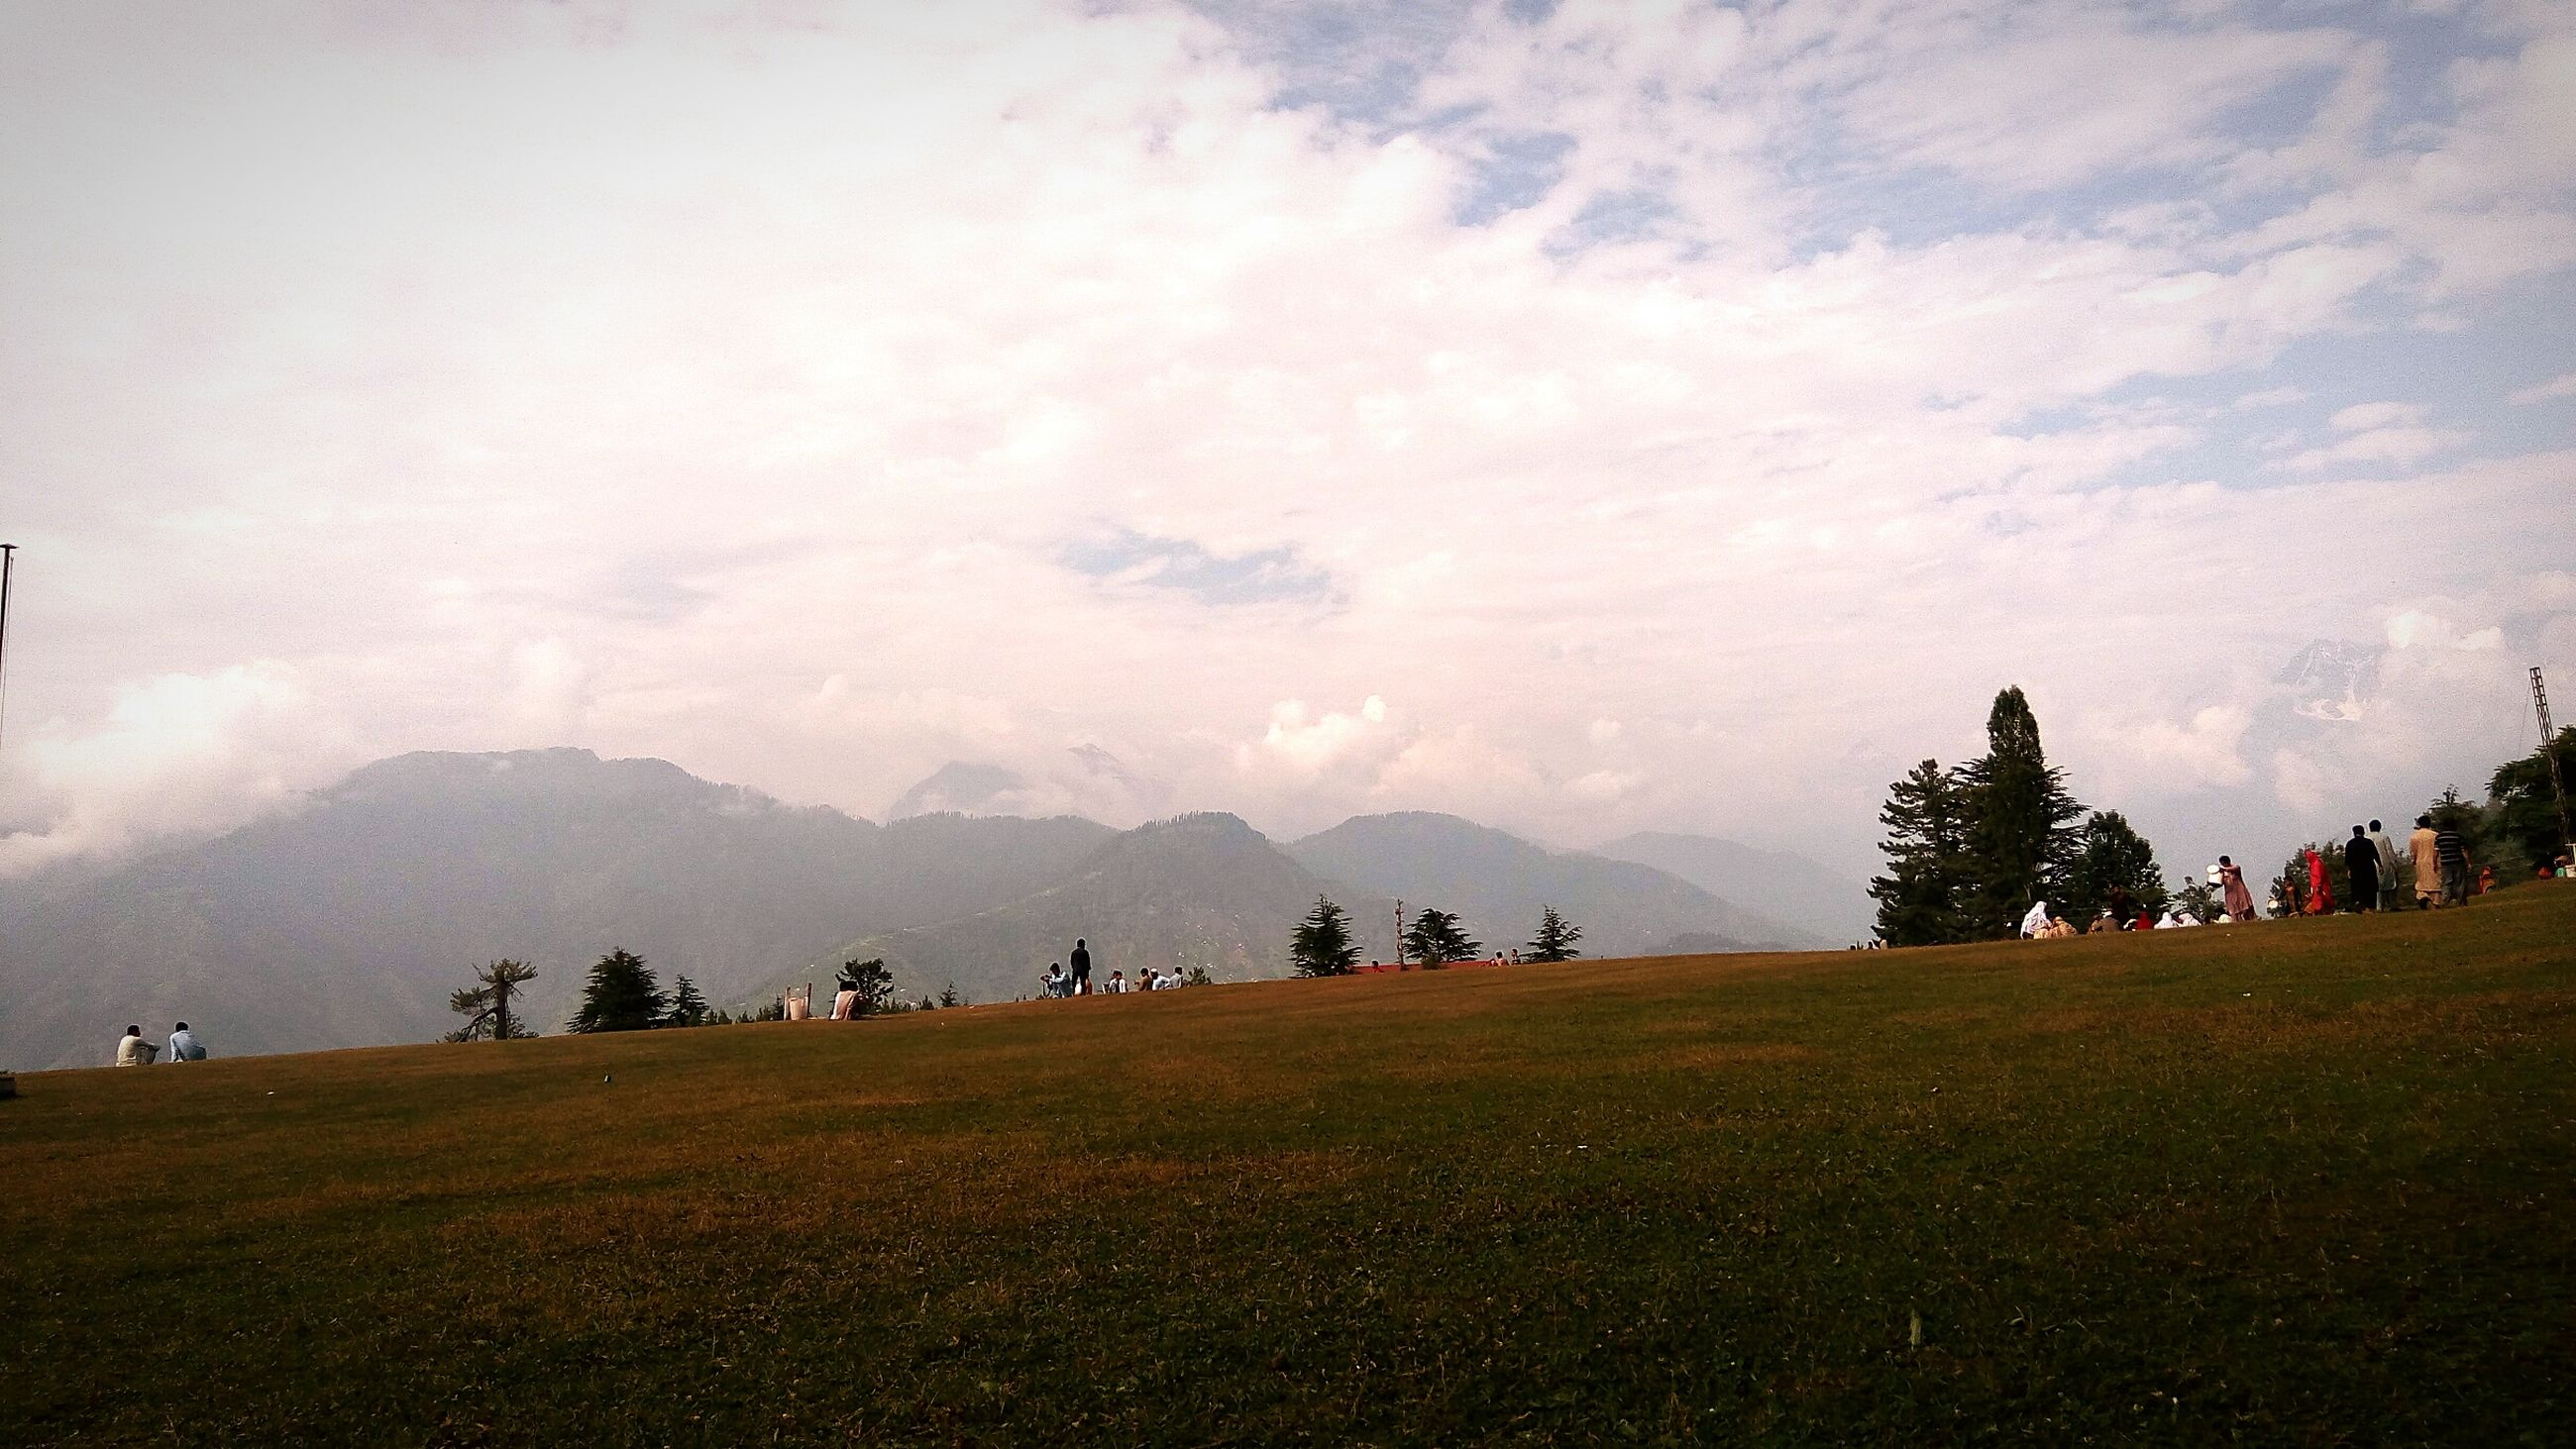 sky, mountain, outdoors, nature, beauty in nature, landscape, tree, sunset, people, day